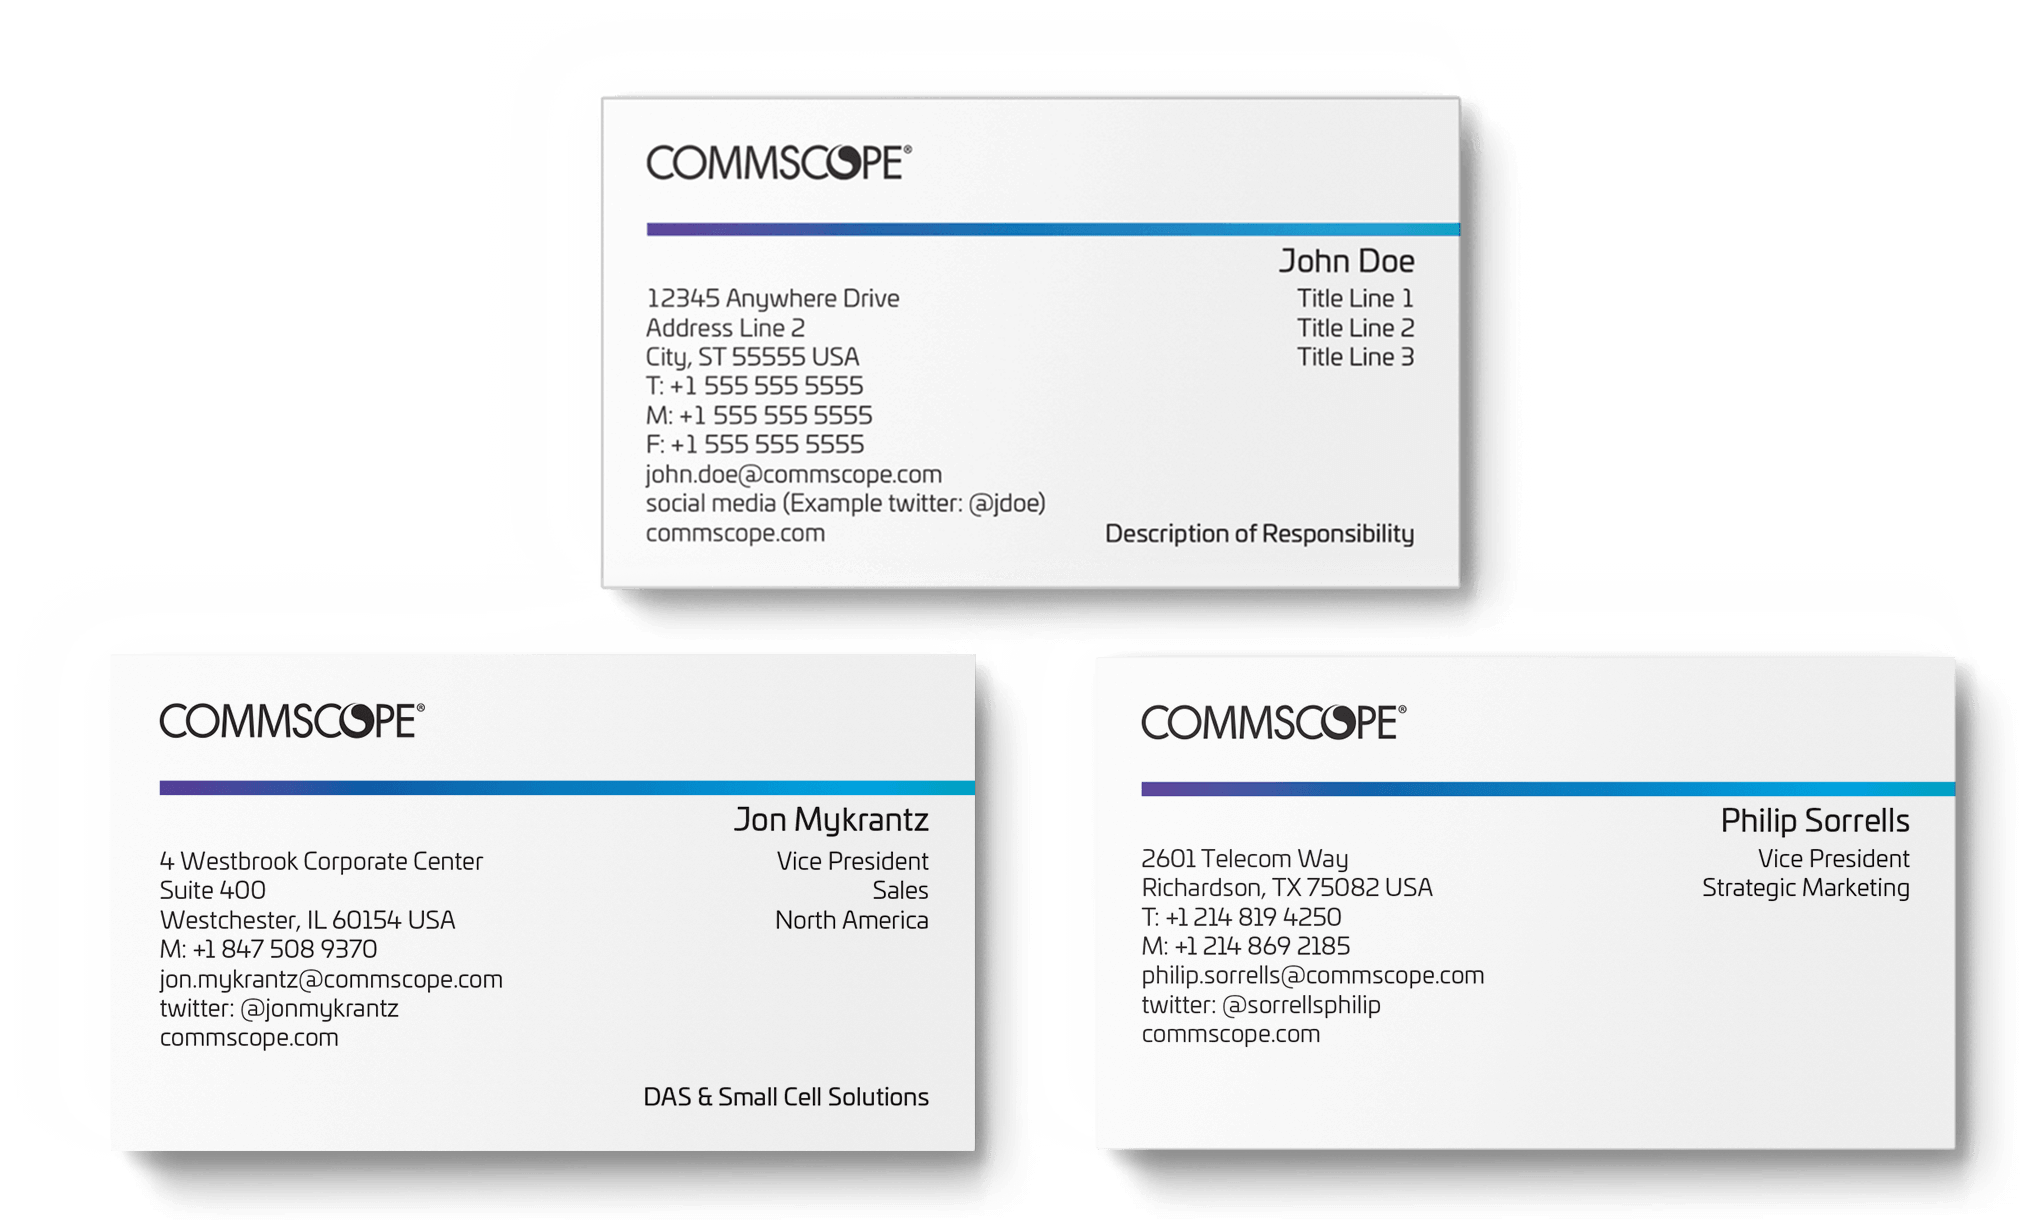 commscope online stationery store